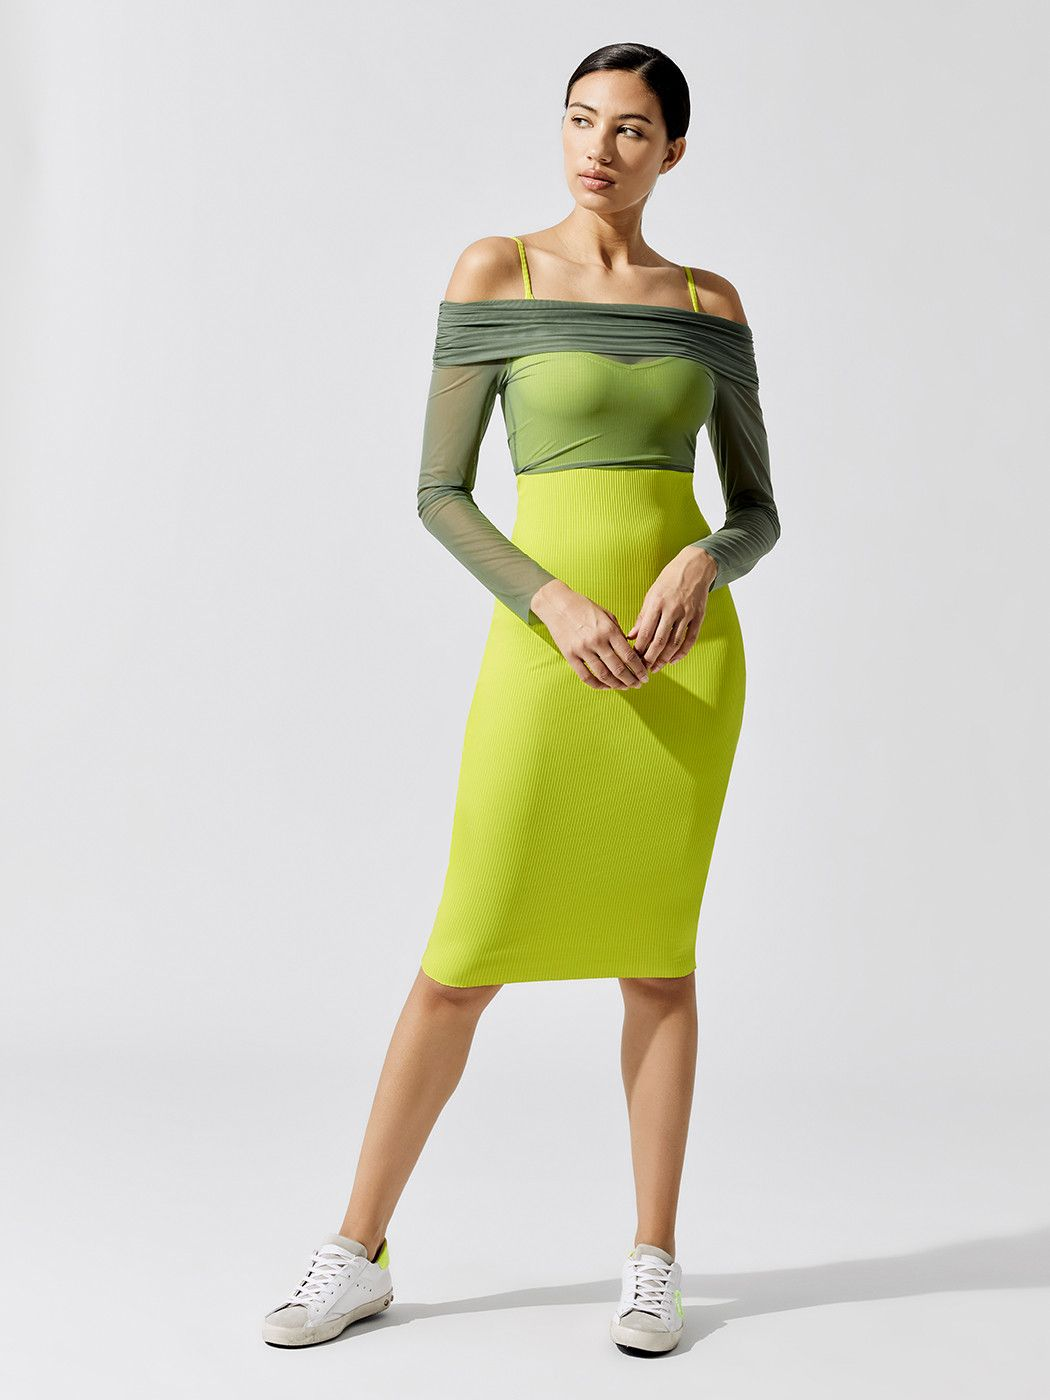 Ribbed Dress Ribbed Dresses Body Con Dress Outfit Dresses [ 1400 x 1050 Pixel ]